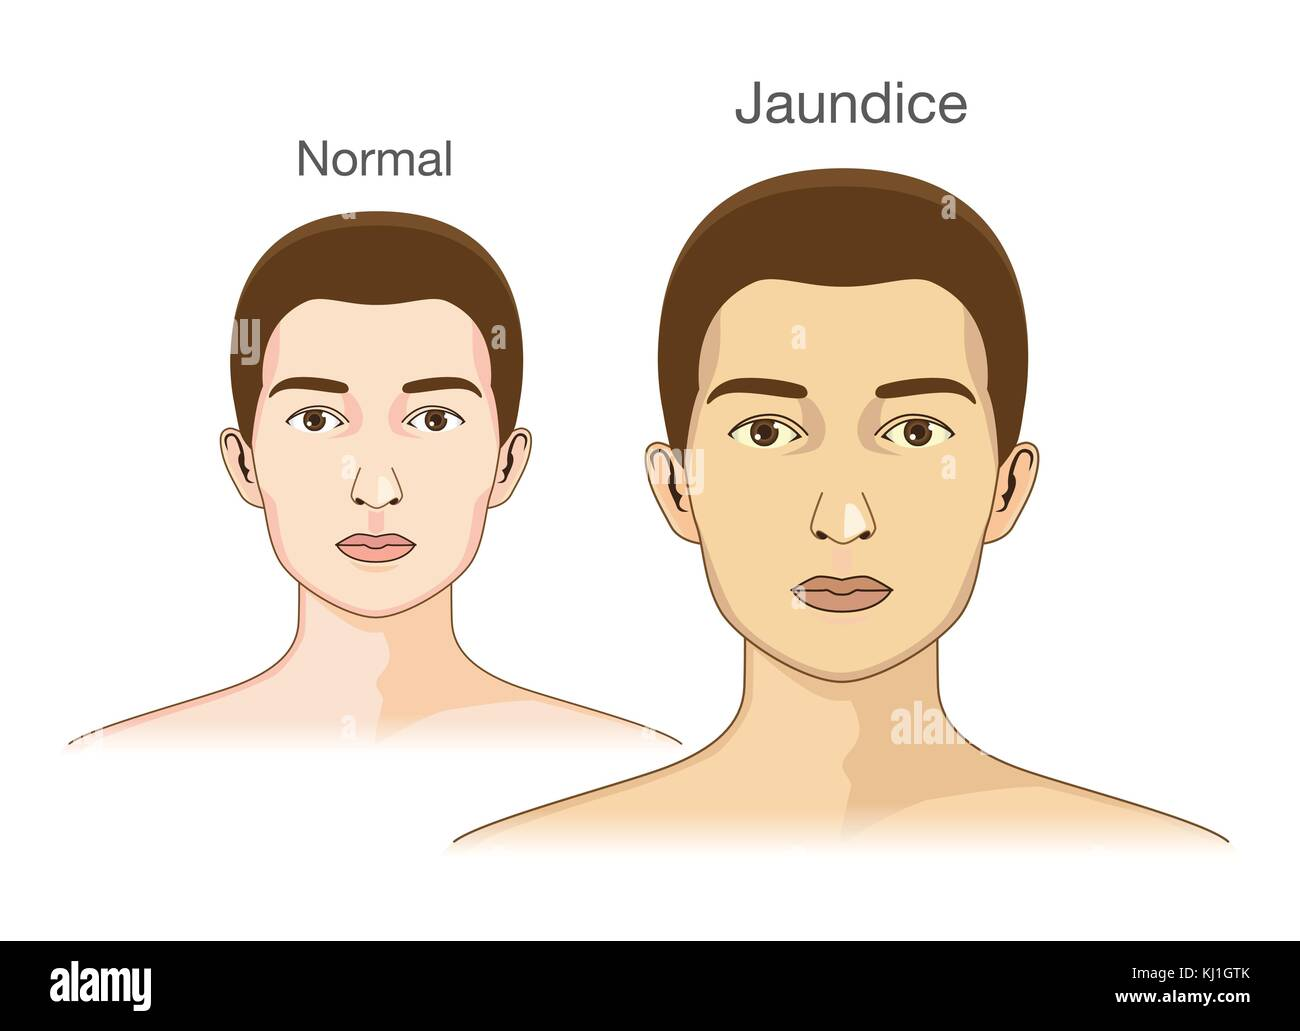 The Comparison between normal skin people and yellowing from Jaundice. - Stock Vector